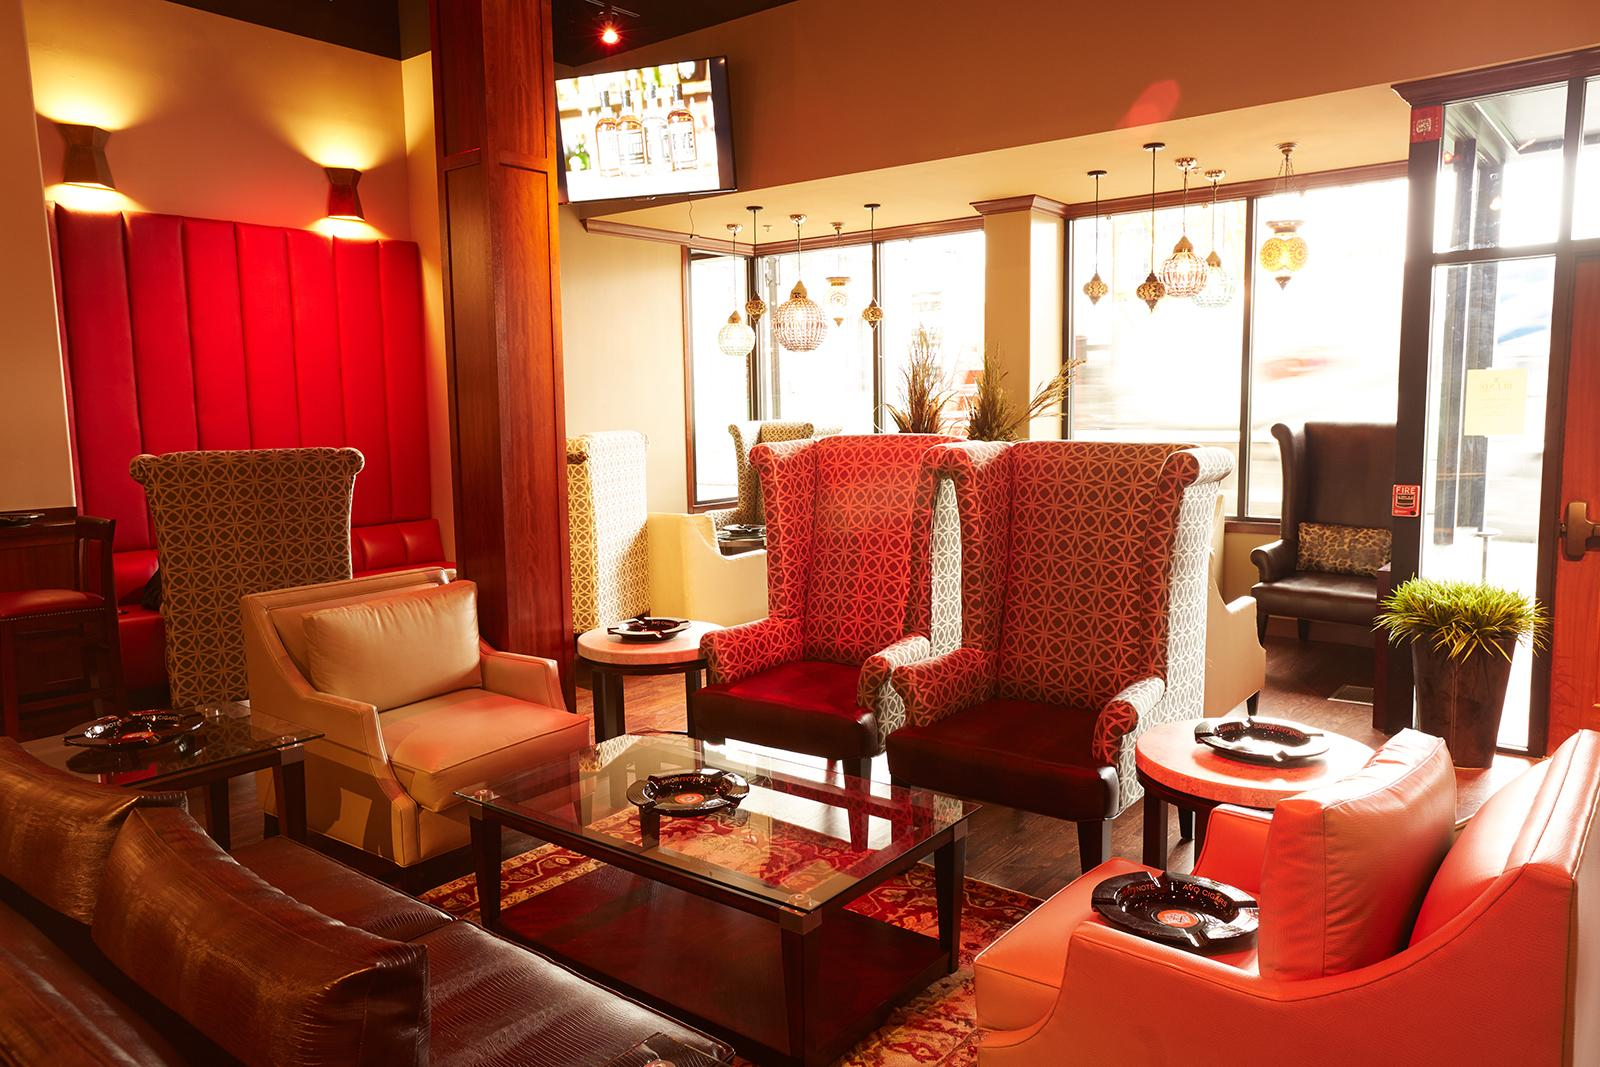 The front sitting area offers cozy leather couches and easy chairs.